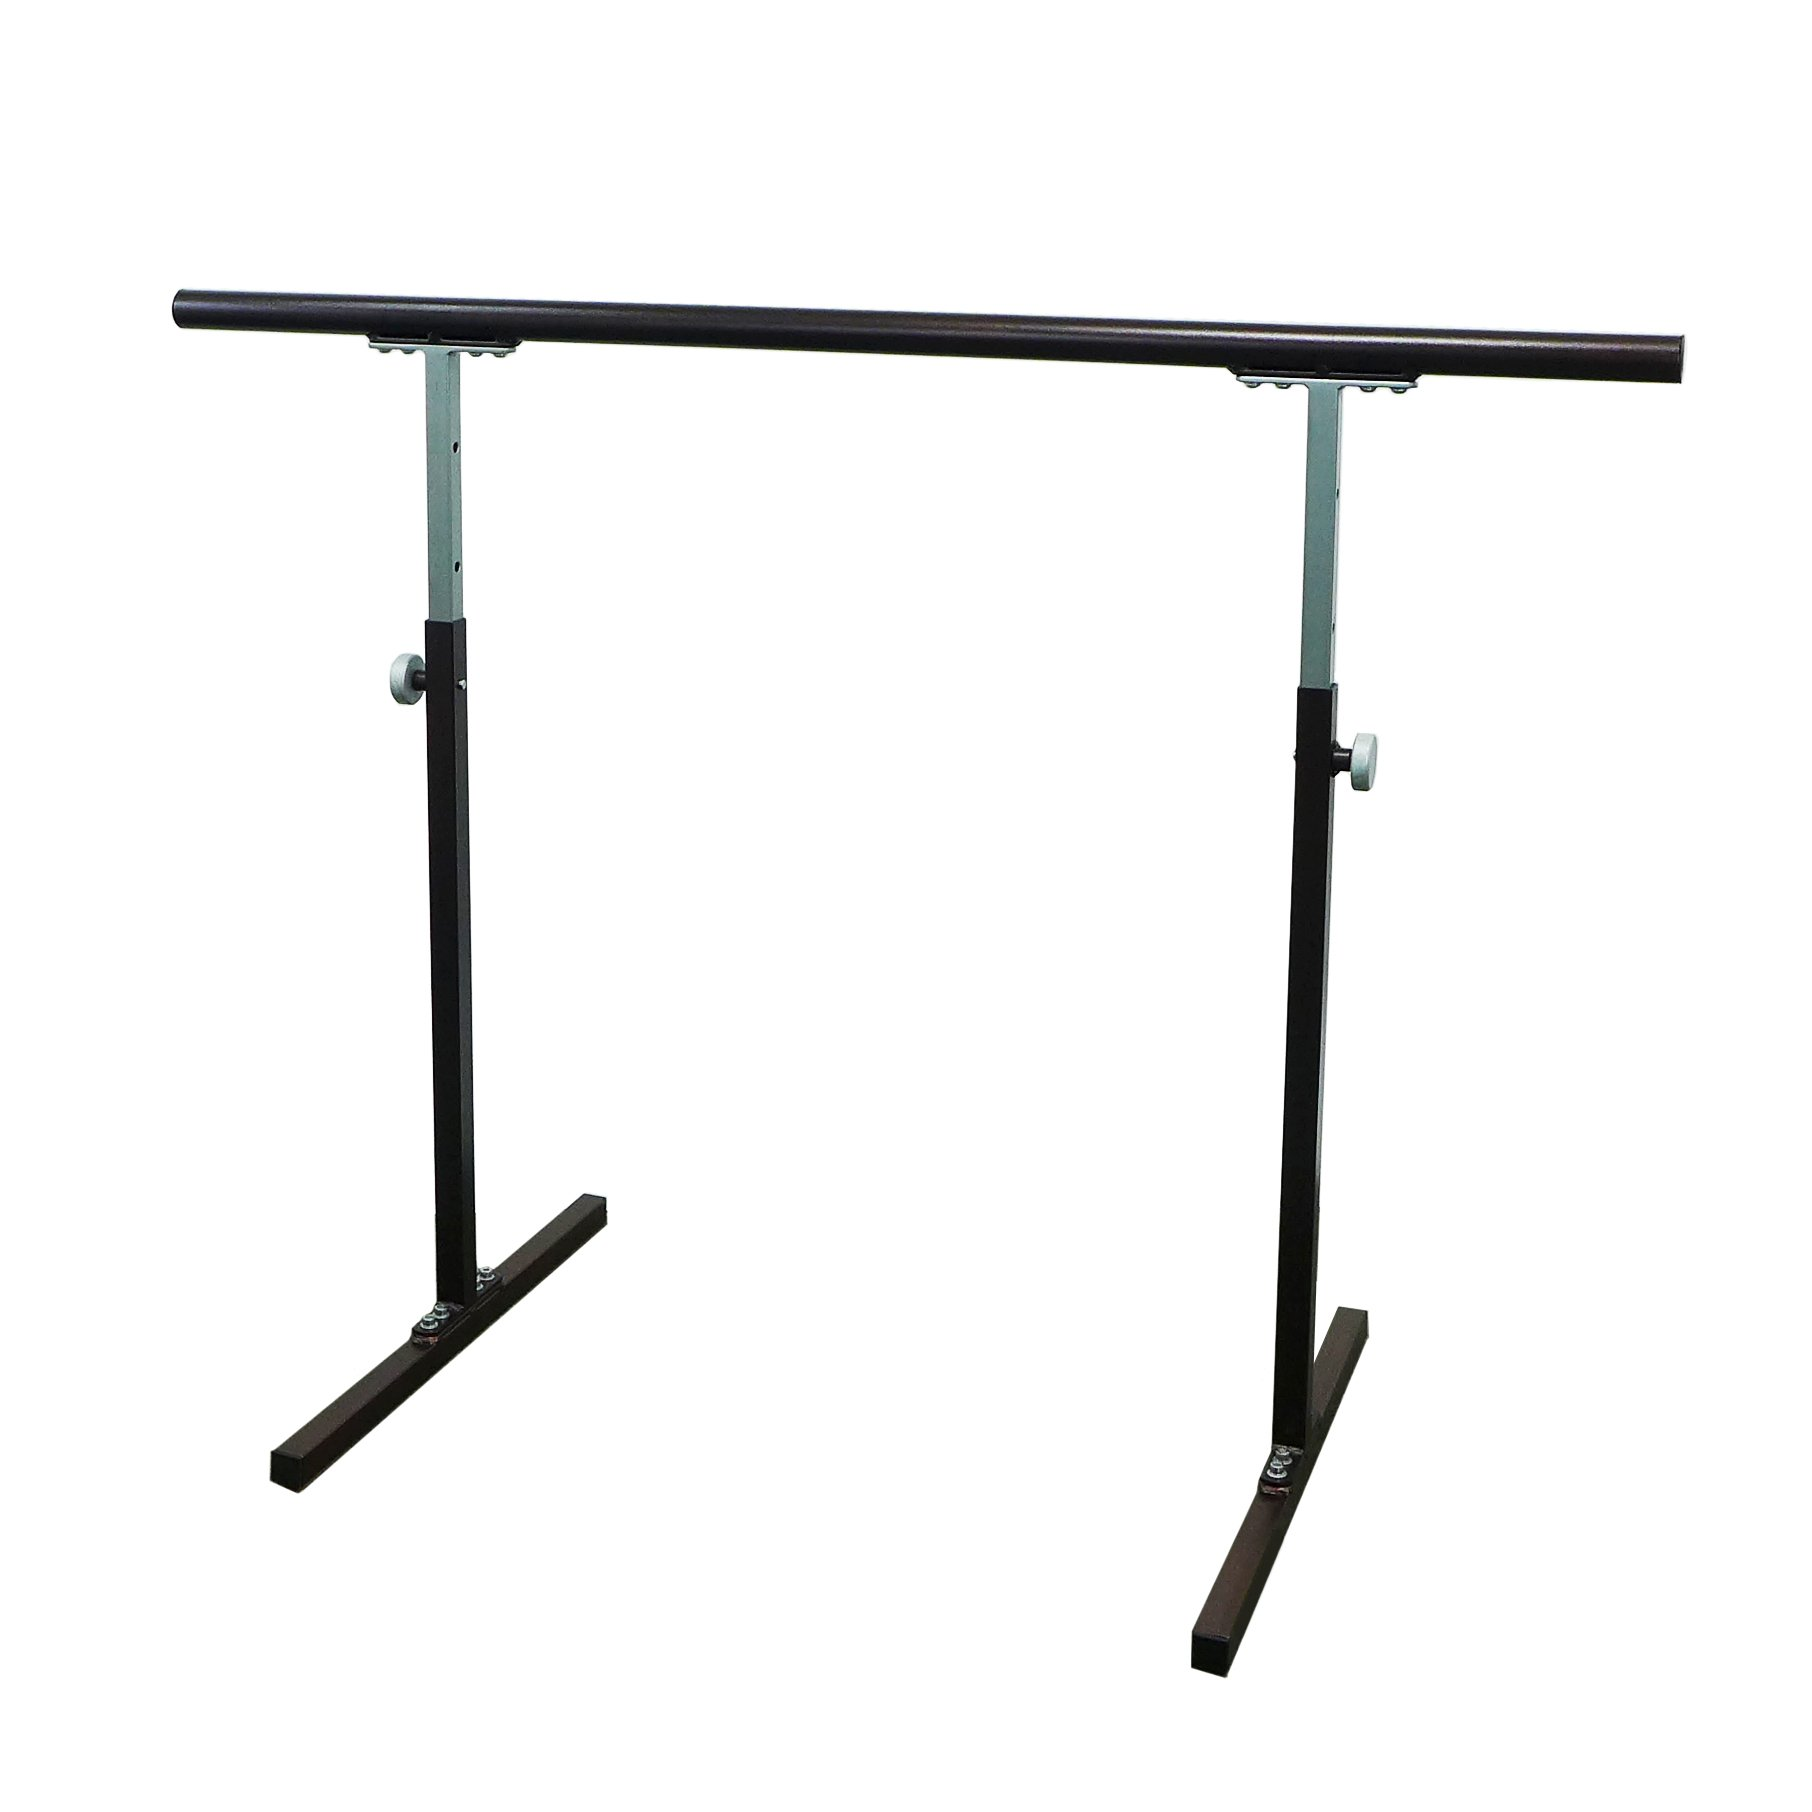 SoftTouch Ballet Barre 4.5ft Portable Dance Bar - Adjustable Height 31'' - 49'' - Freestanding Stretch Barre 54'' by SoftTouch